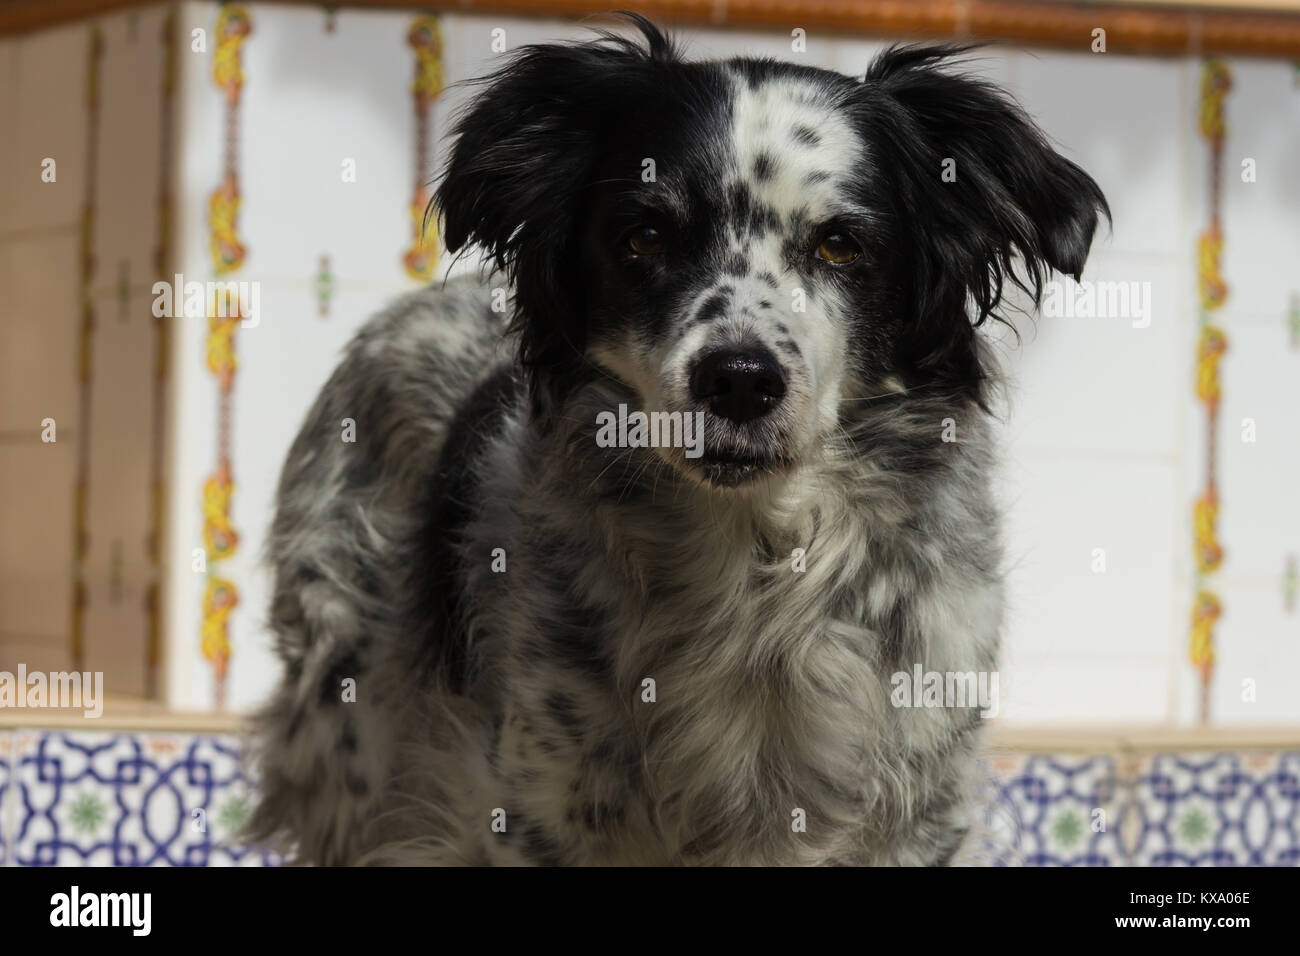 Canis lupus familiaris, Dog Springer Spaniel cross, Domestic, adult male, taken in November 2017 in Andalucia Spain, - Stock Image